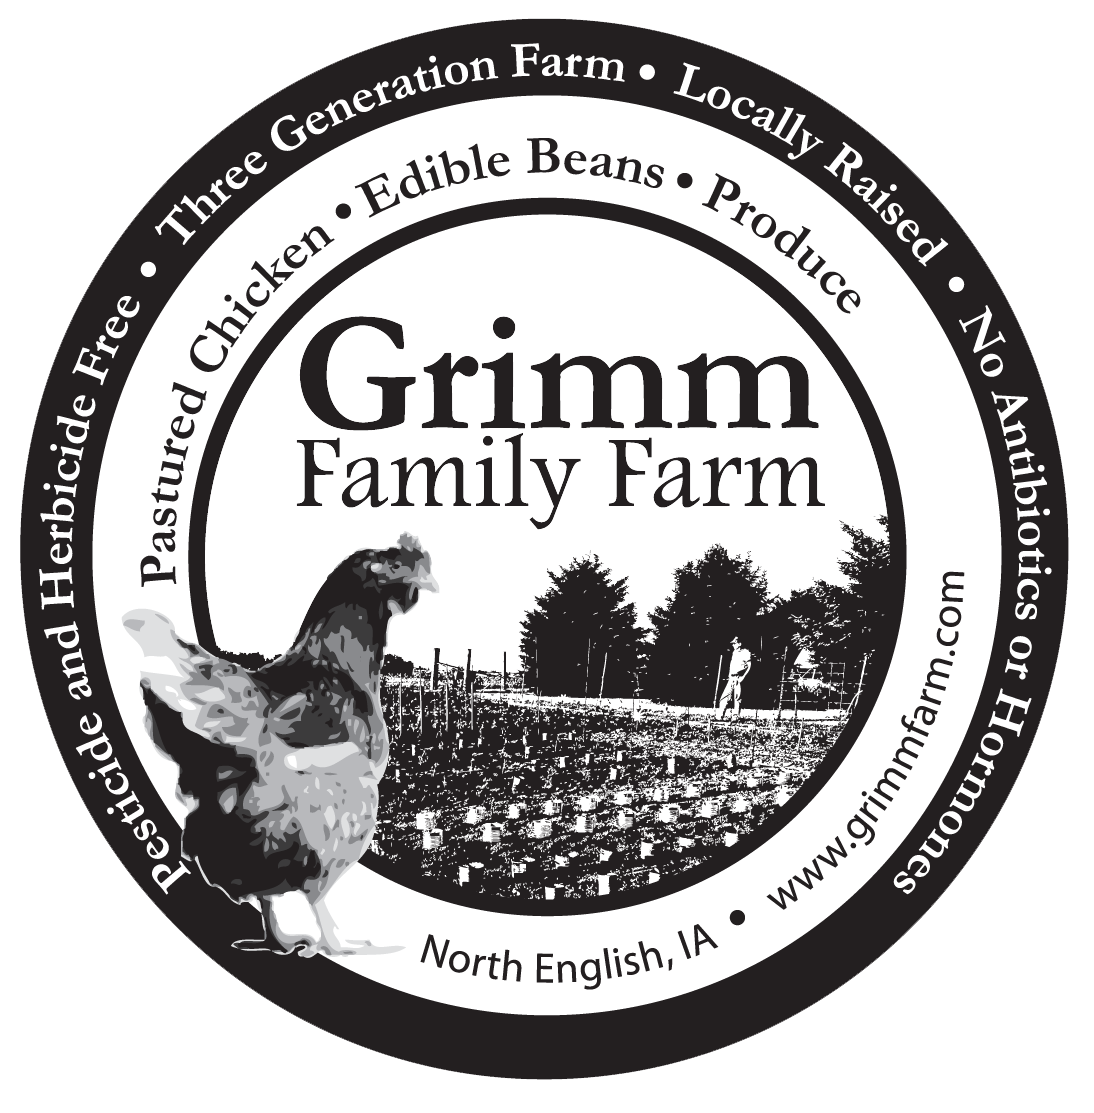 Grimm Family Farm